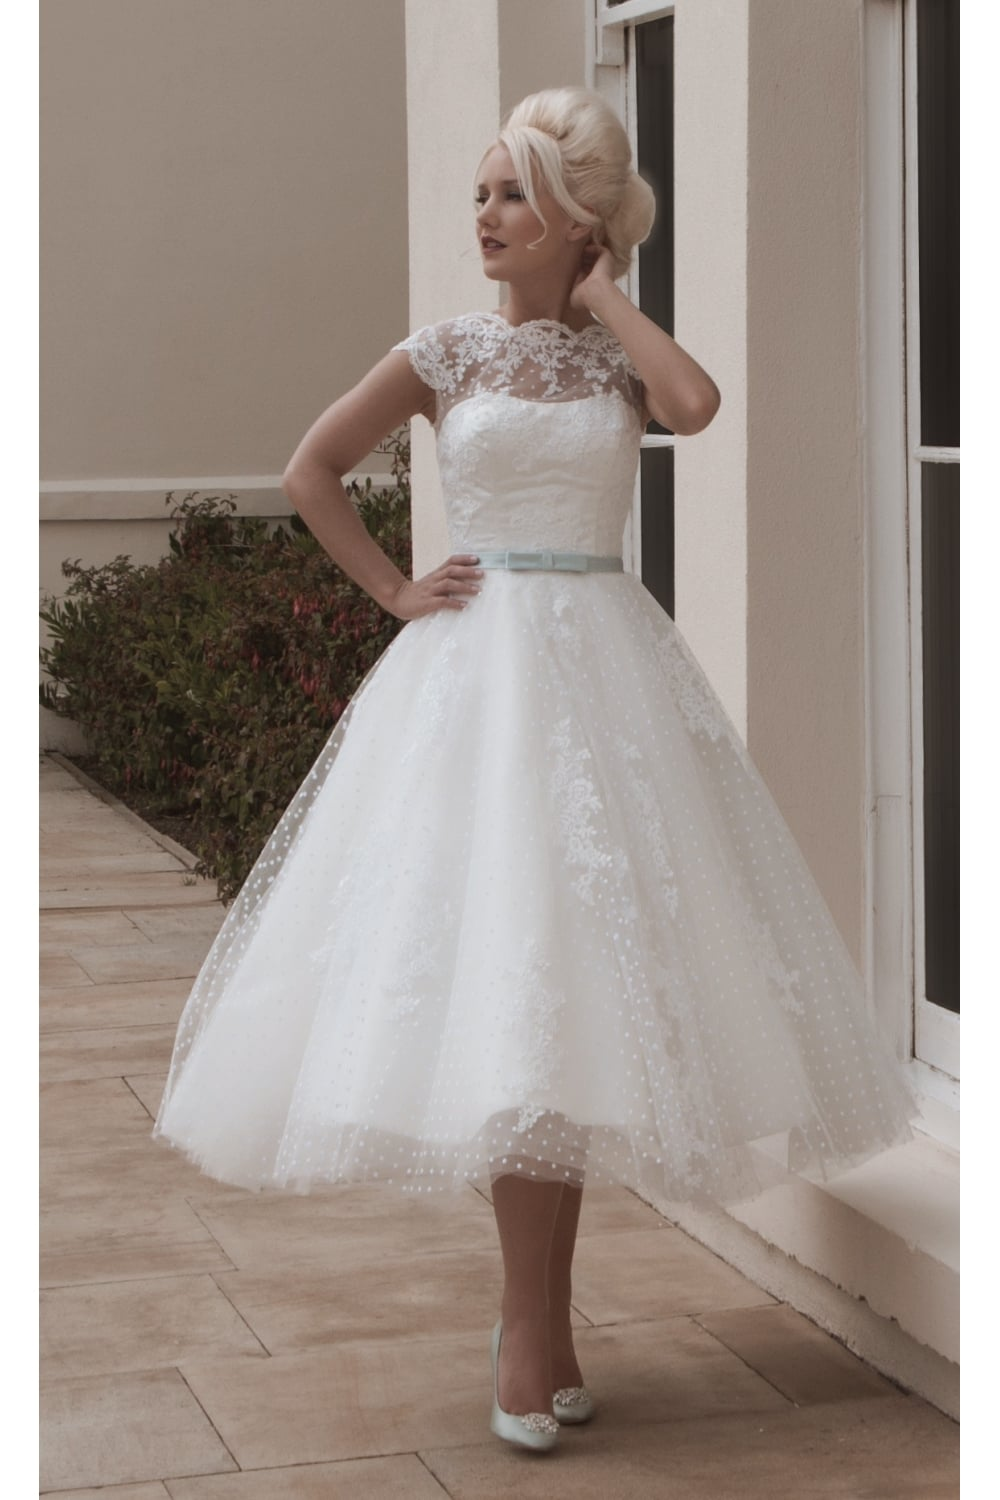 House Of Mooshki Claire Tea Length Retro Polka Dot Lace Short Wedding Dress